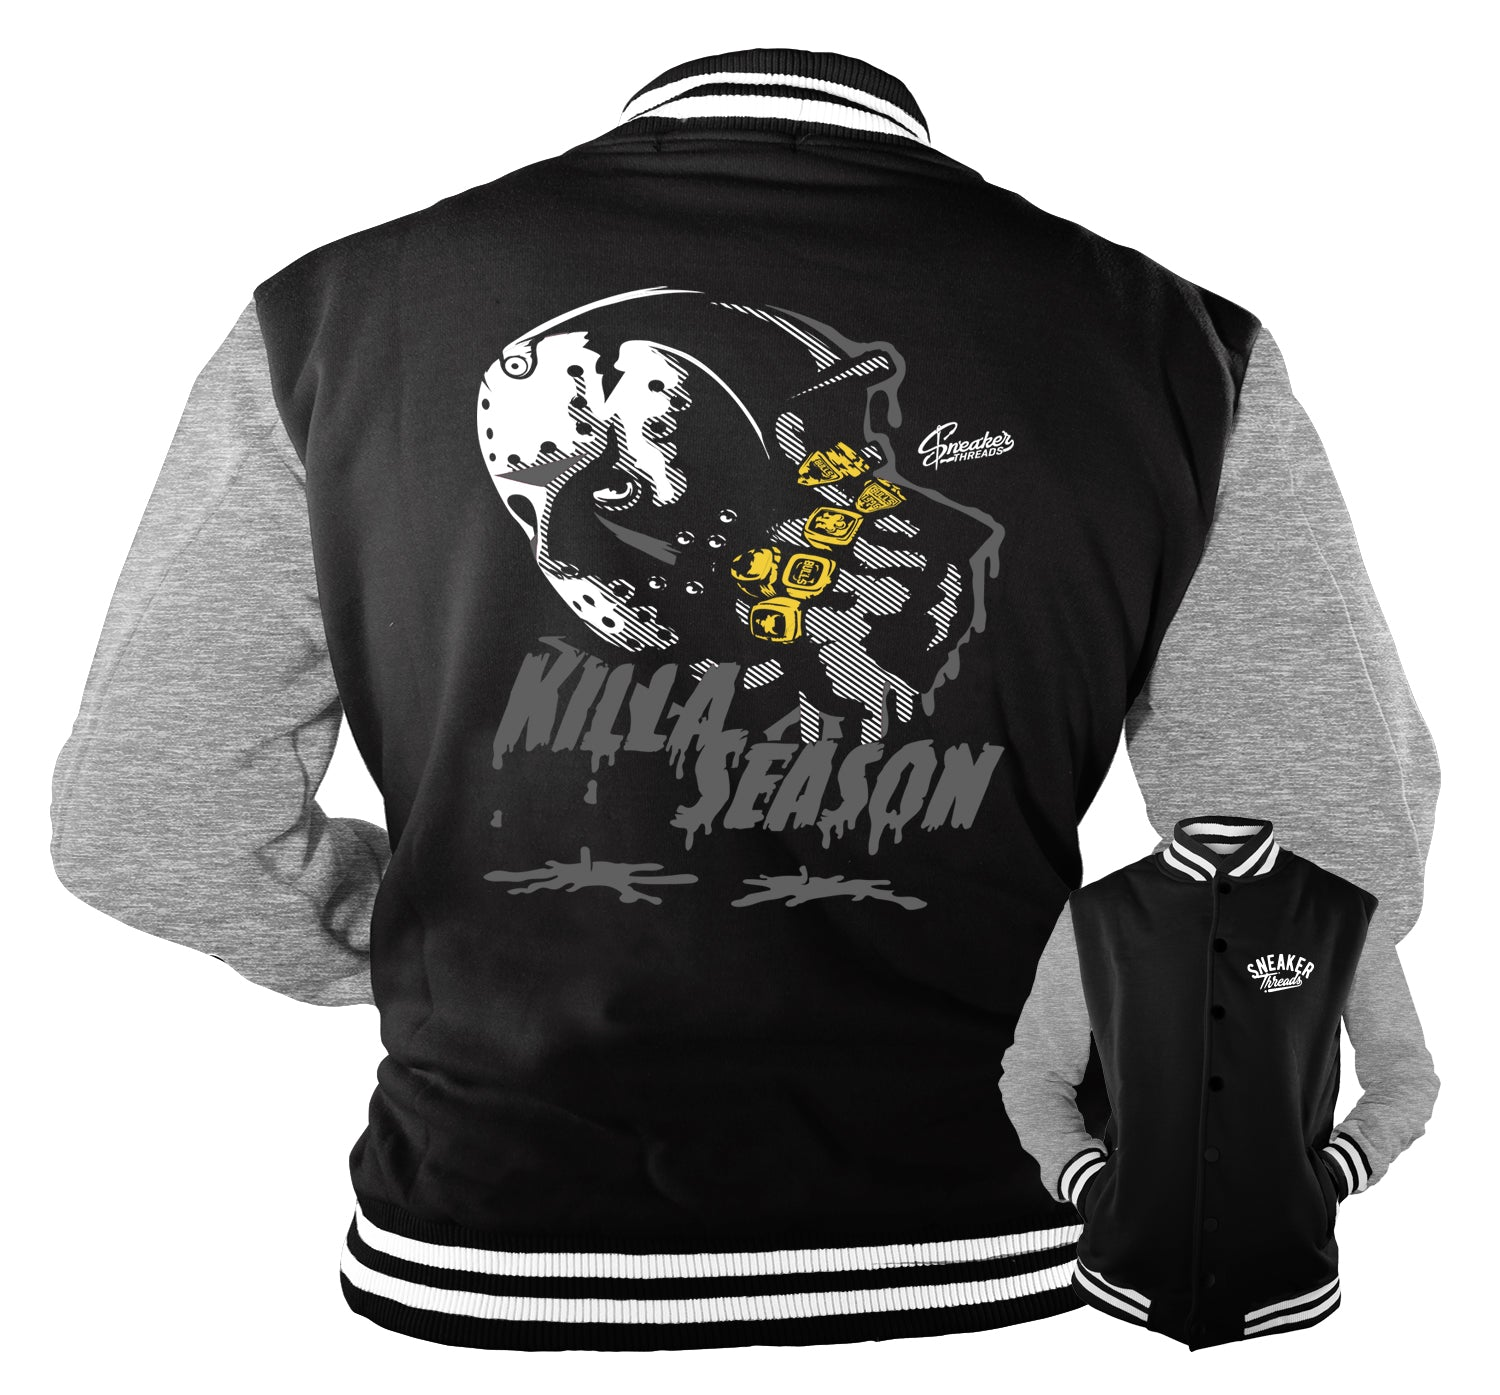 Jordan 4 Black Cat Killa Season Jacket